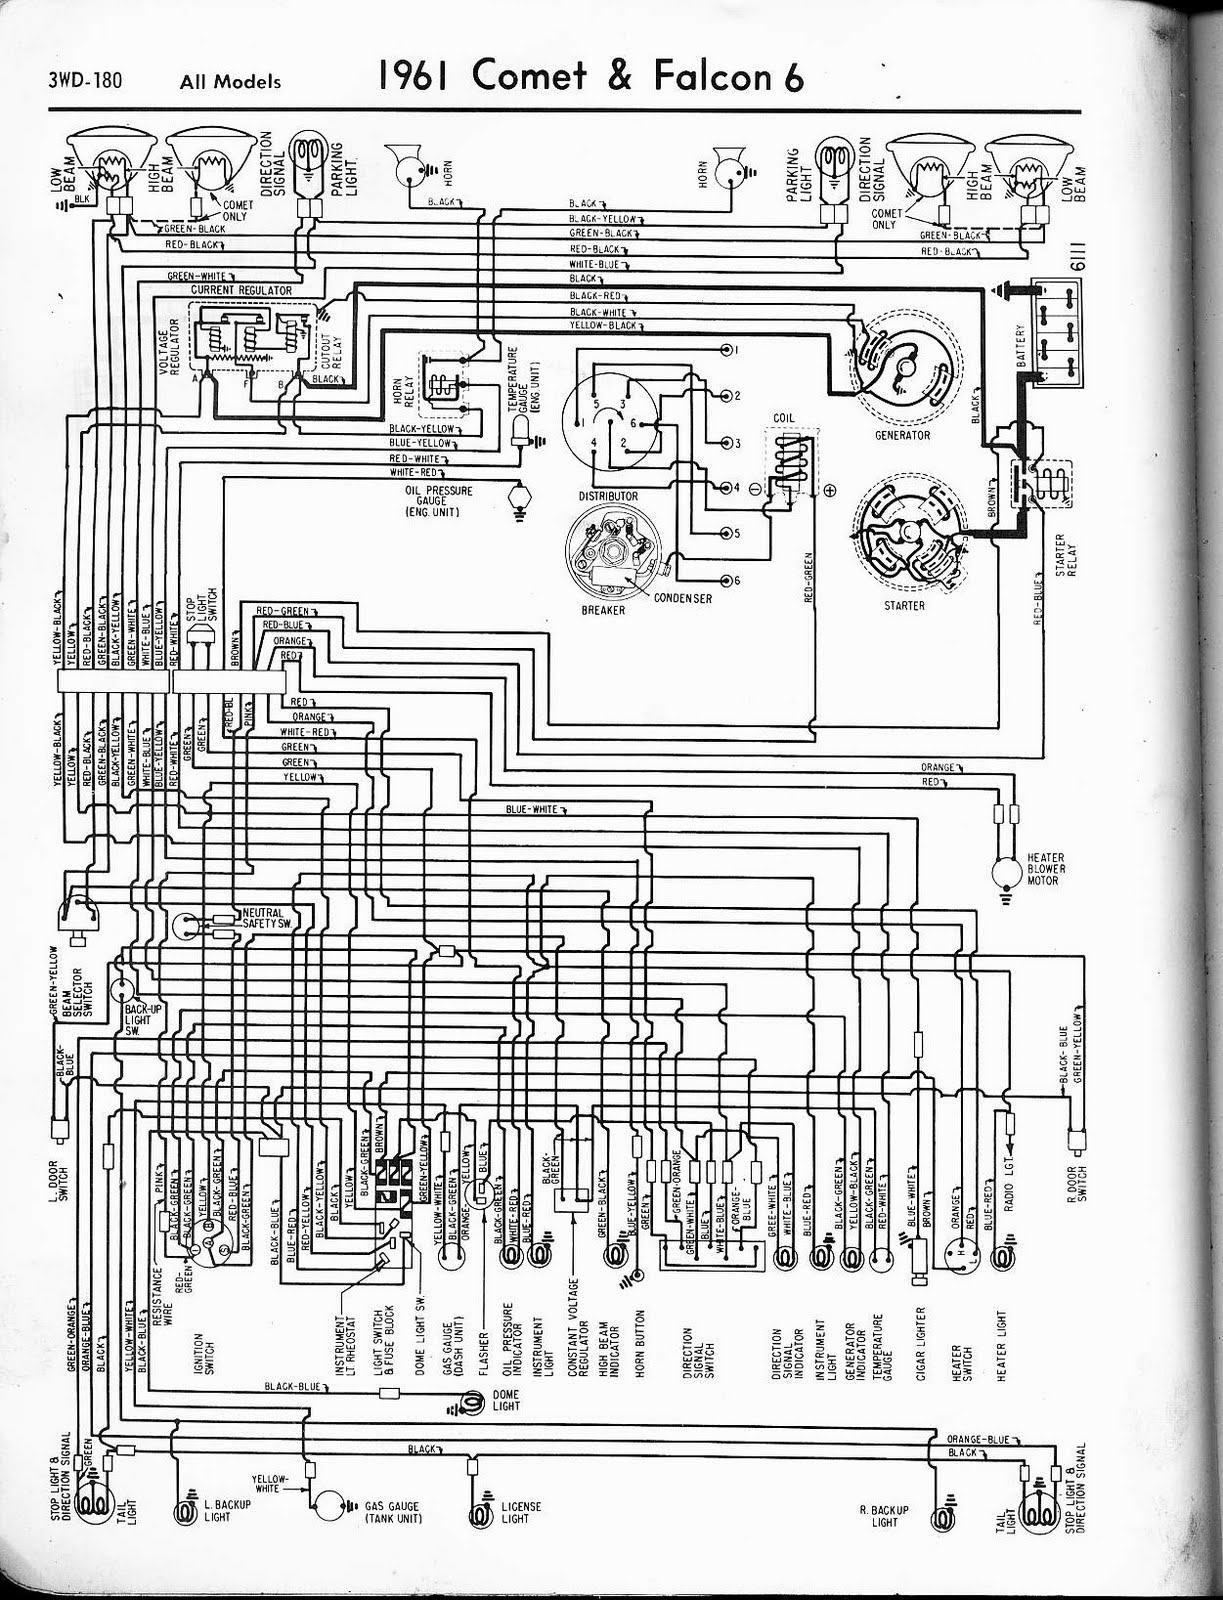 1979 Chevy Pickup Fuse Panel Diagram Reveolution Of Wiring Corvette Box Free Auto 1961 Ford Falcon Comet Location 1980 Block